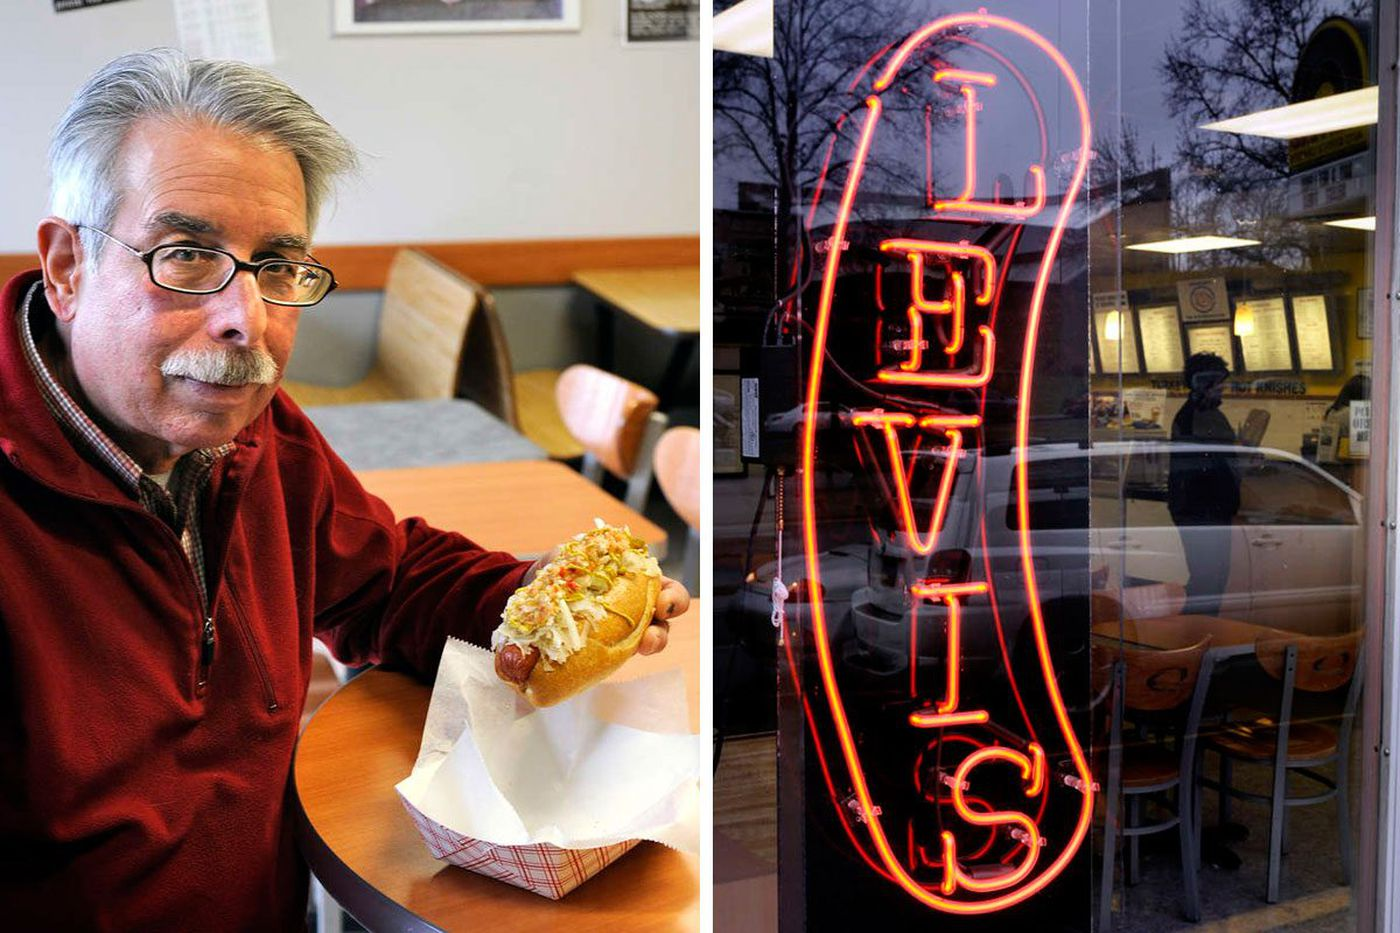 Levis Hot Dogs in Abington closes